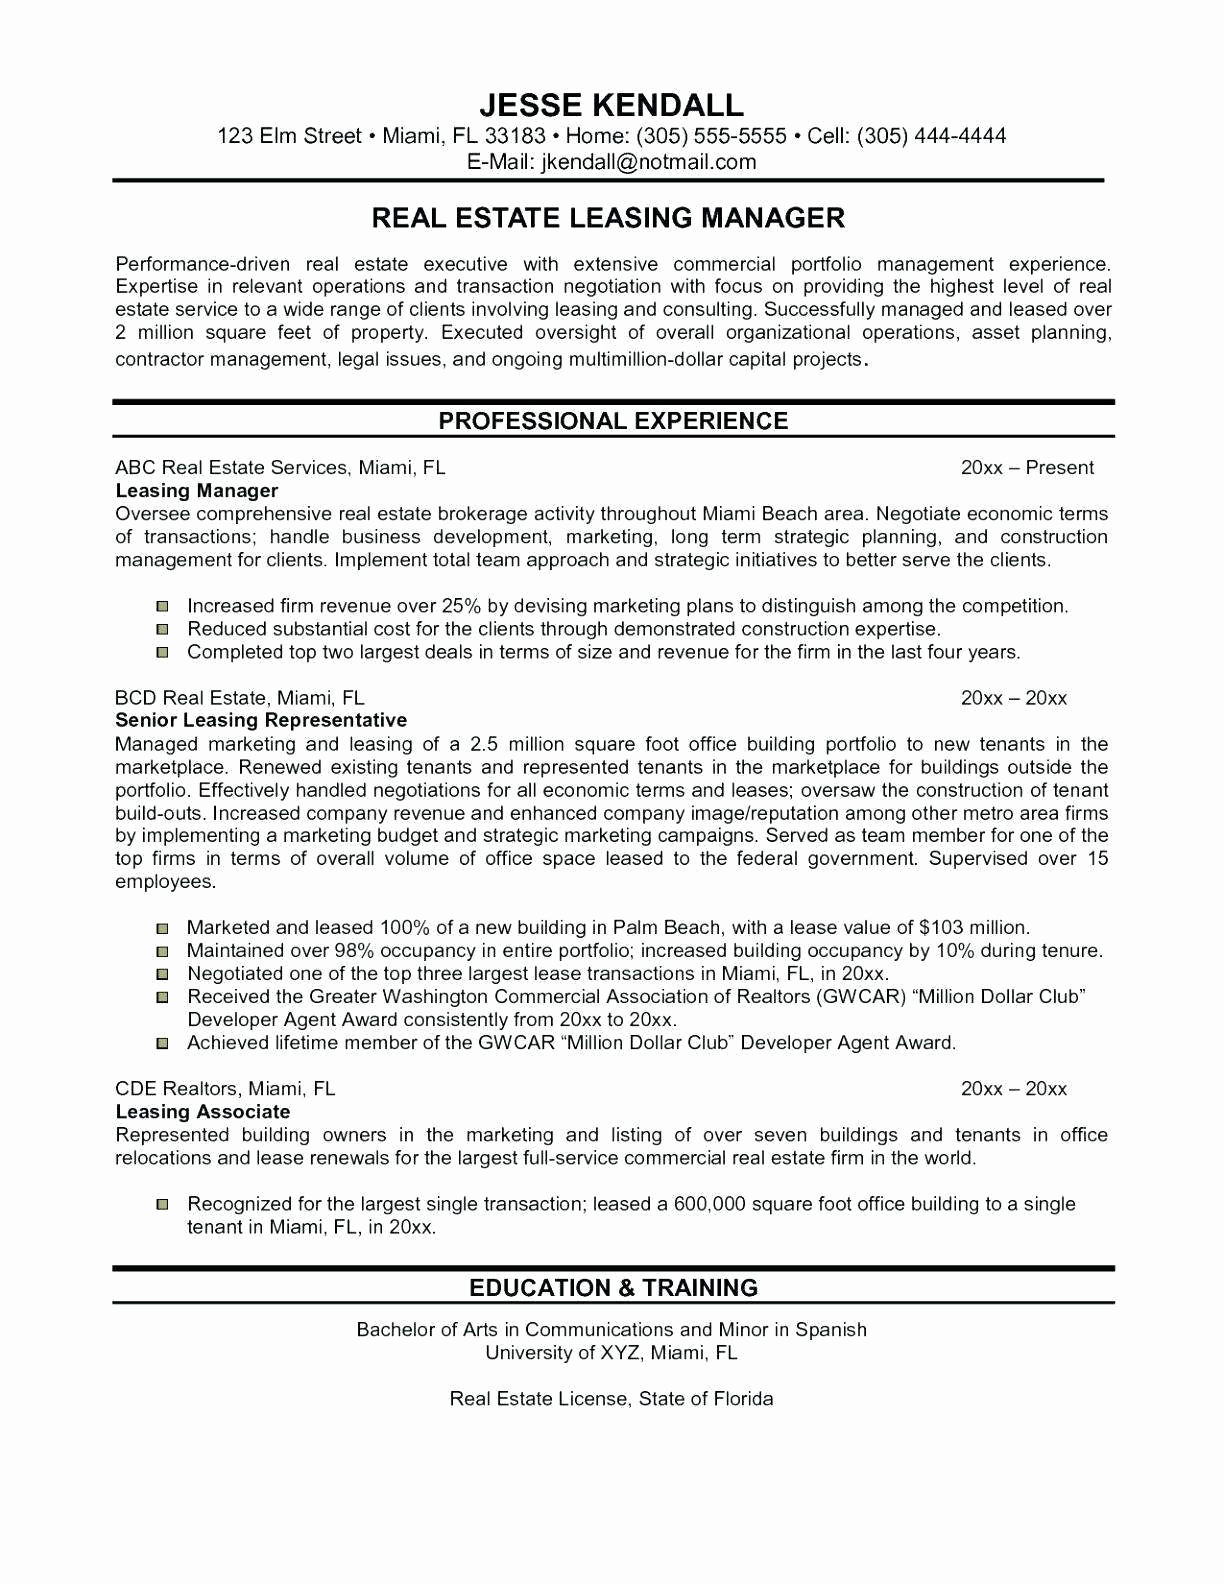 Real Estate Business Plan Template Best Of Real Estate Agent Business Plan Template Pdf Caquetapositivo